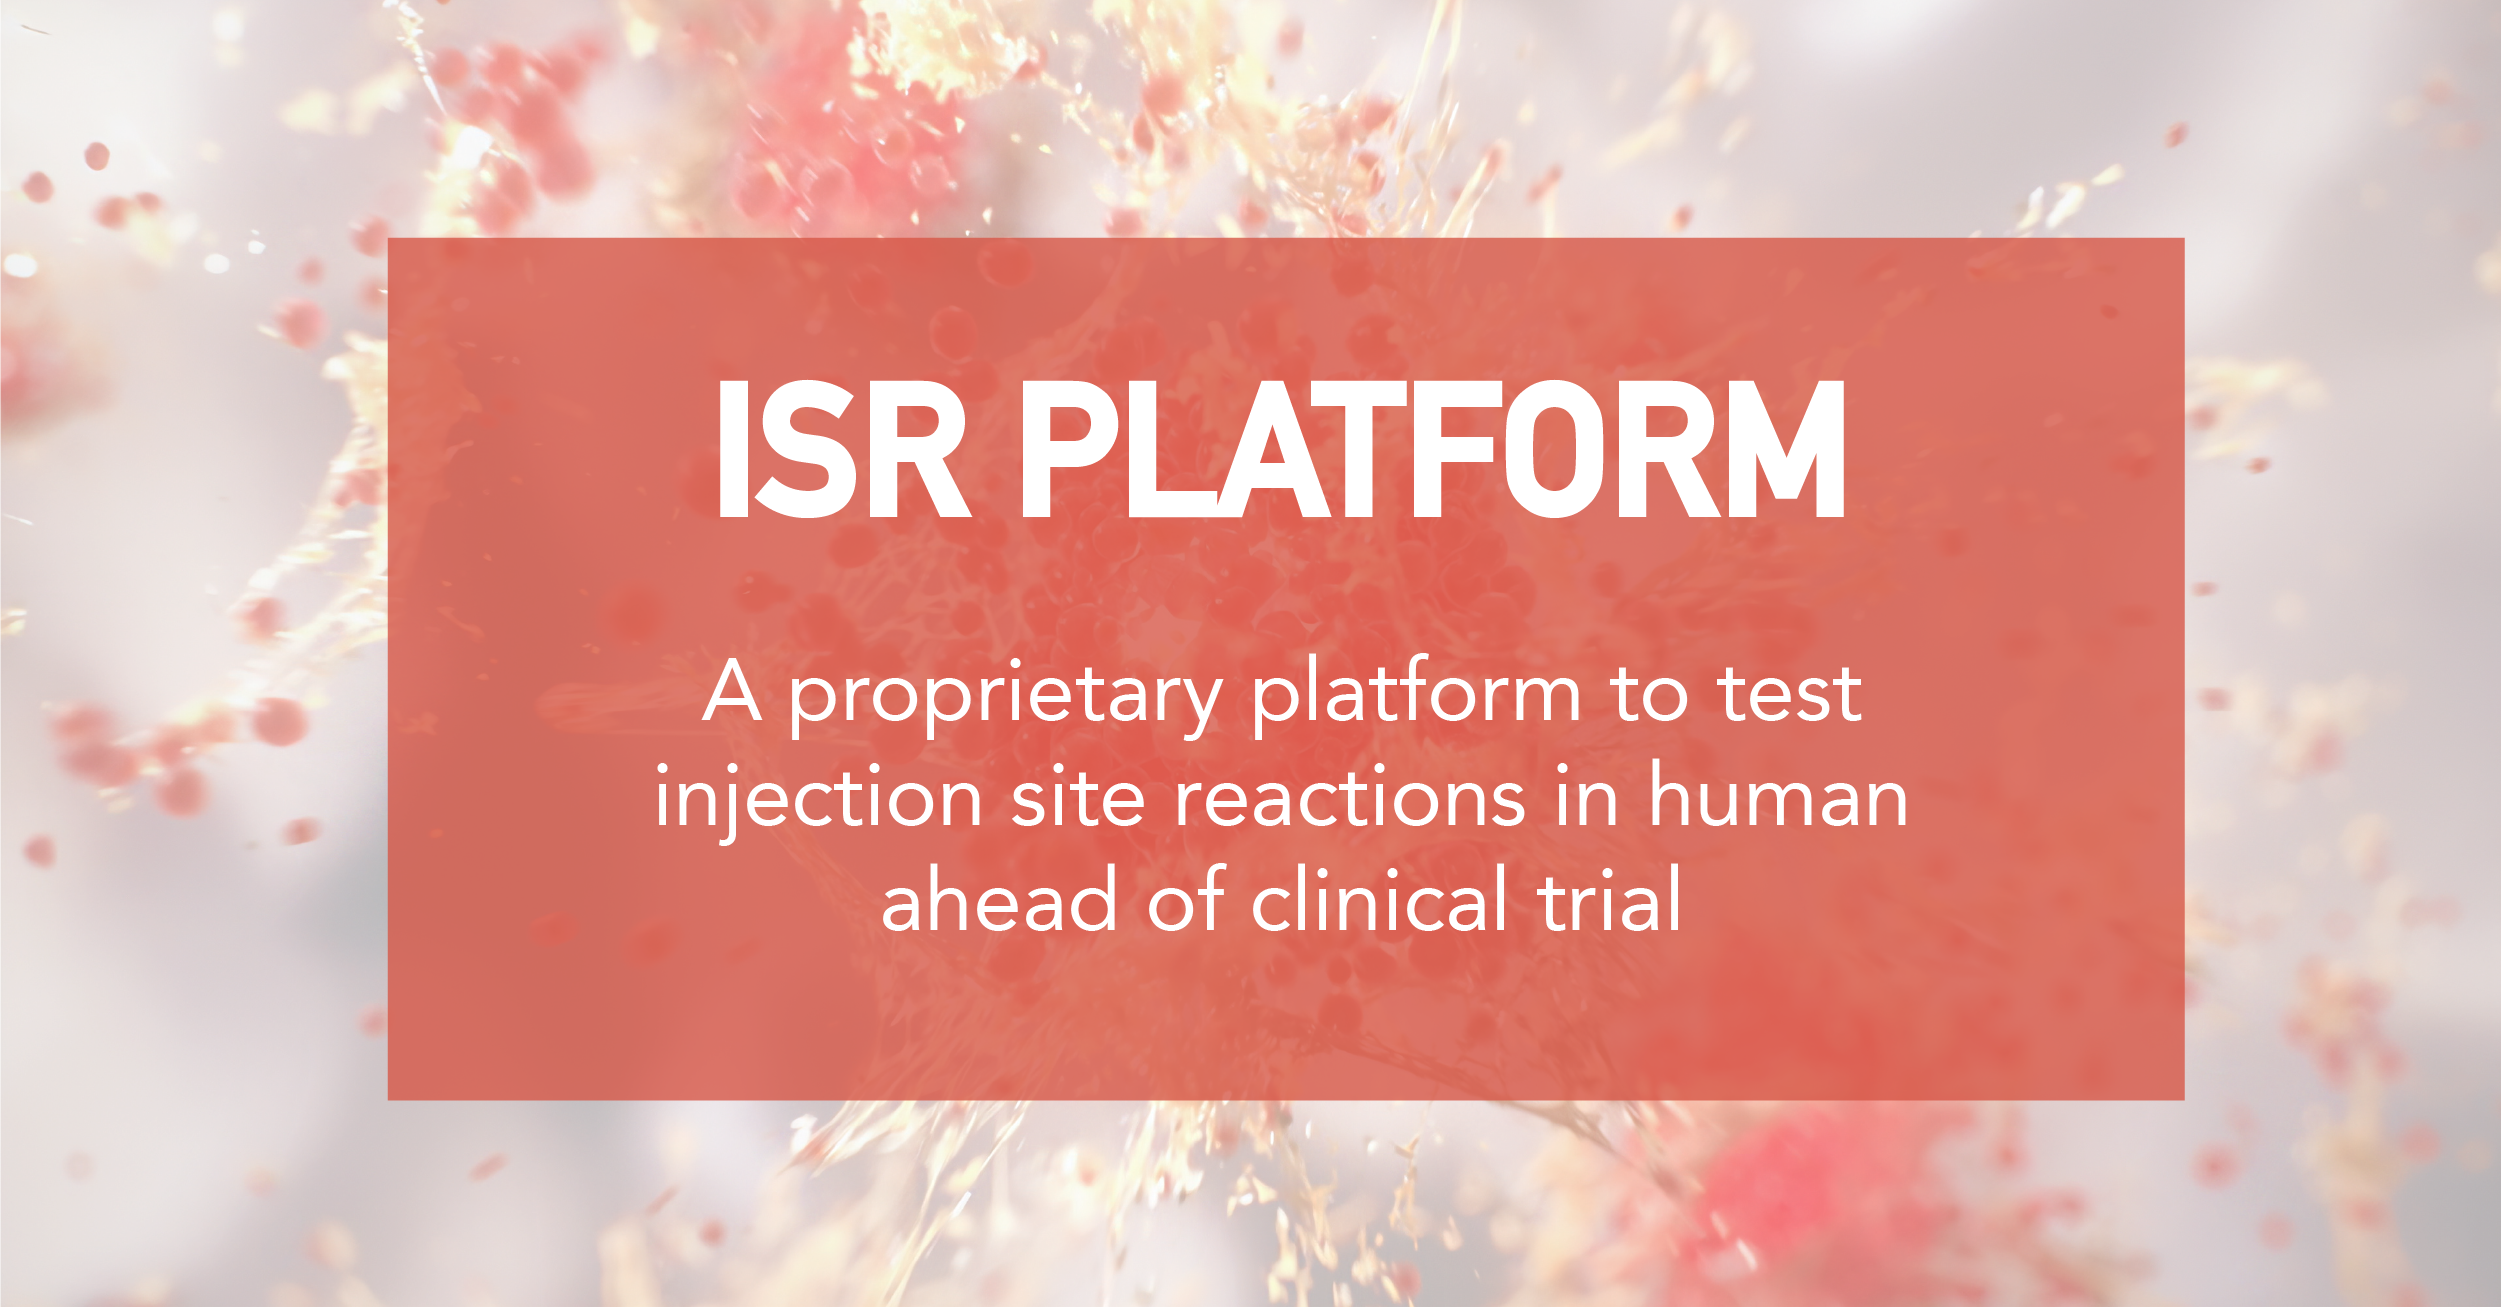 Injection site reactions are common upon subcutaneous injection of biologics. Genoskin support drug development by offering a new platform of services dedicated to this specific adverse effect